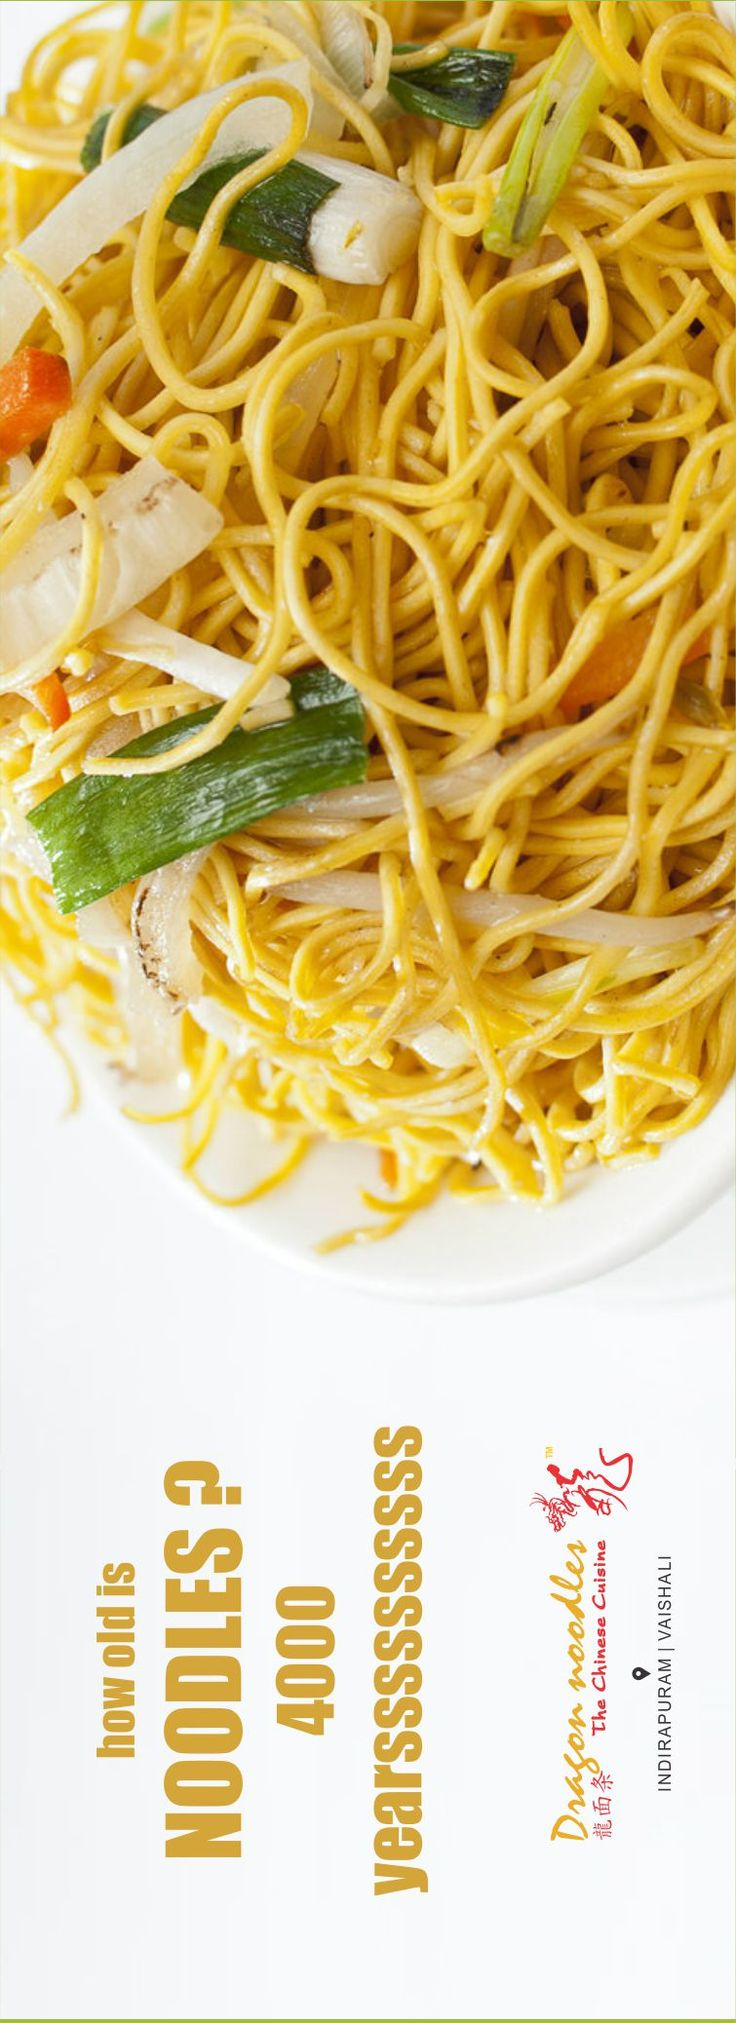 It has been 4000 years since our forefathers first tasted noodles in a province in China. #DragonNoodles #Chinese #Food #Ghaziabad #foodies